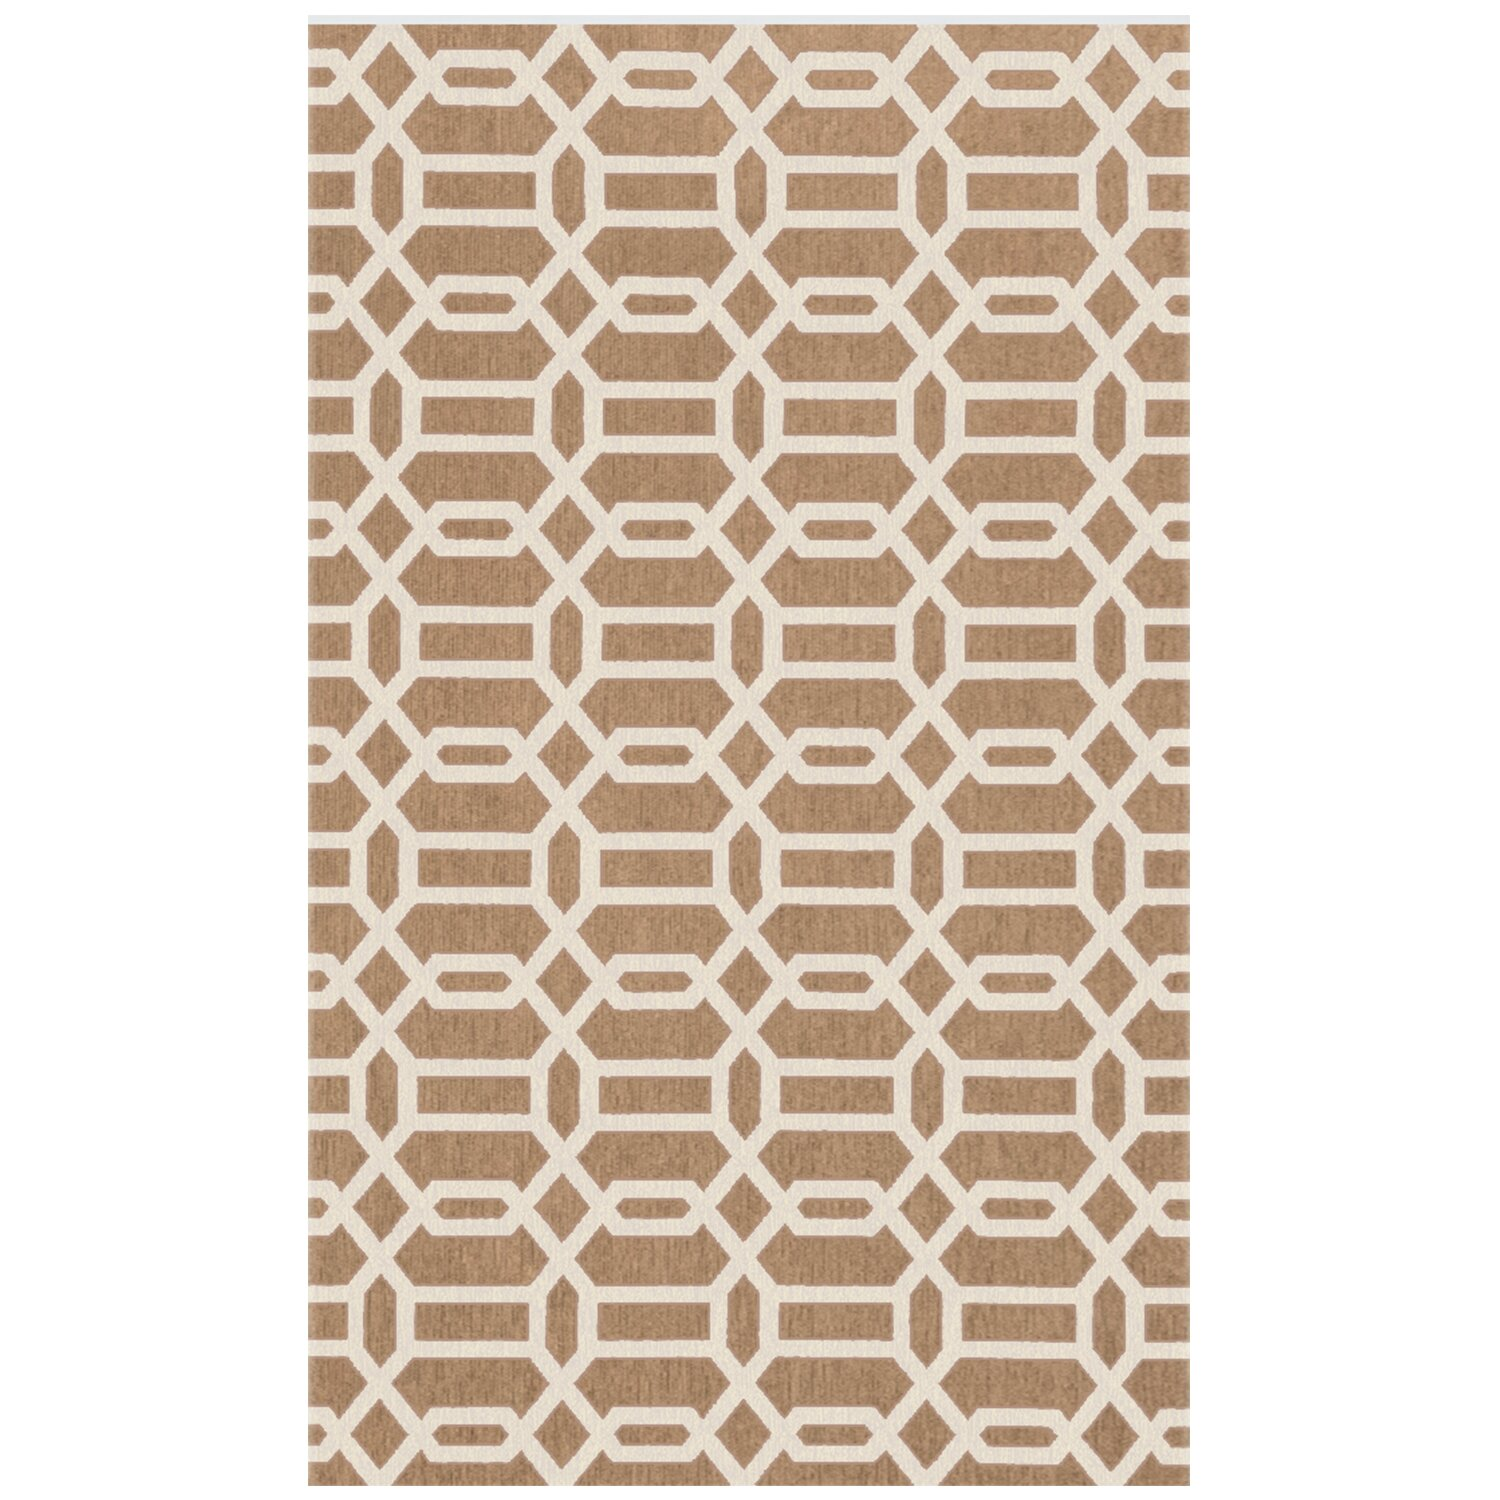 Ruggable Tan And White Area Rug